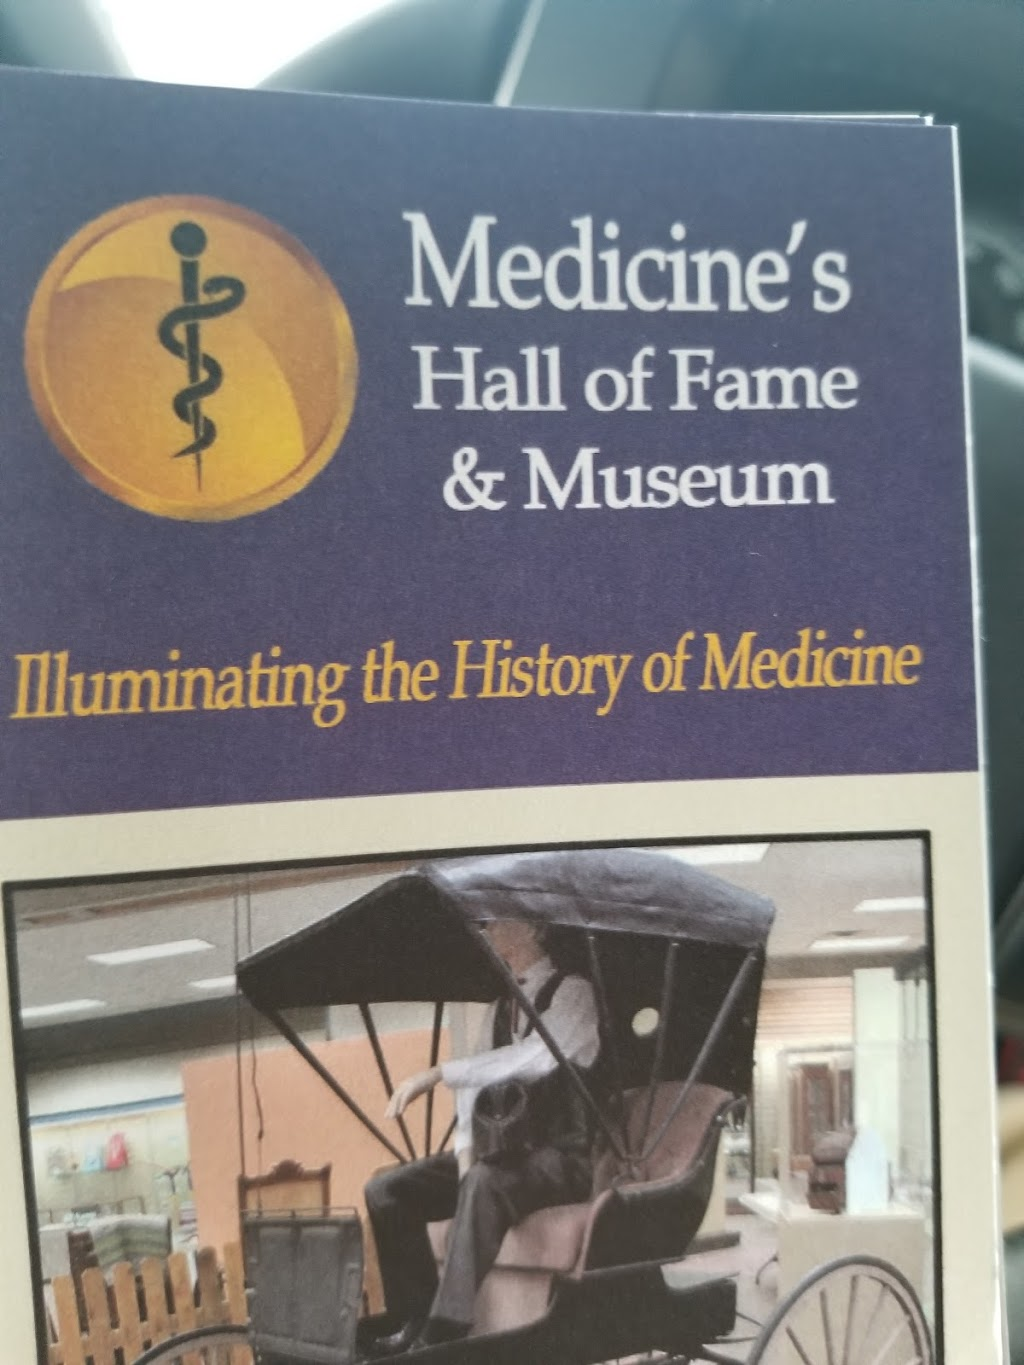 Medicines Hall of Fame and Museum - museum  | Photo 2 of 3 | Address: 6305 Lackman Rd, Shawnee, KS 66217, USA | Phone: (913) 261-9280